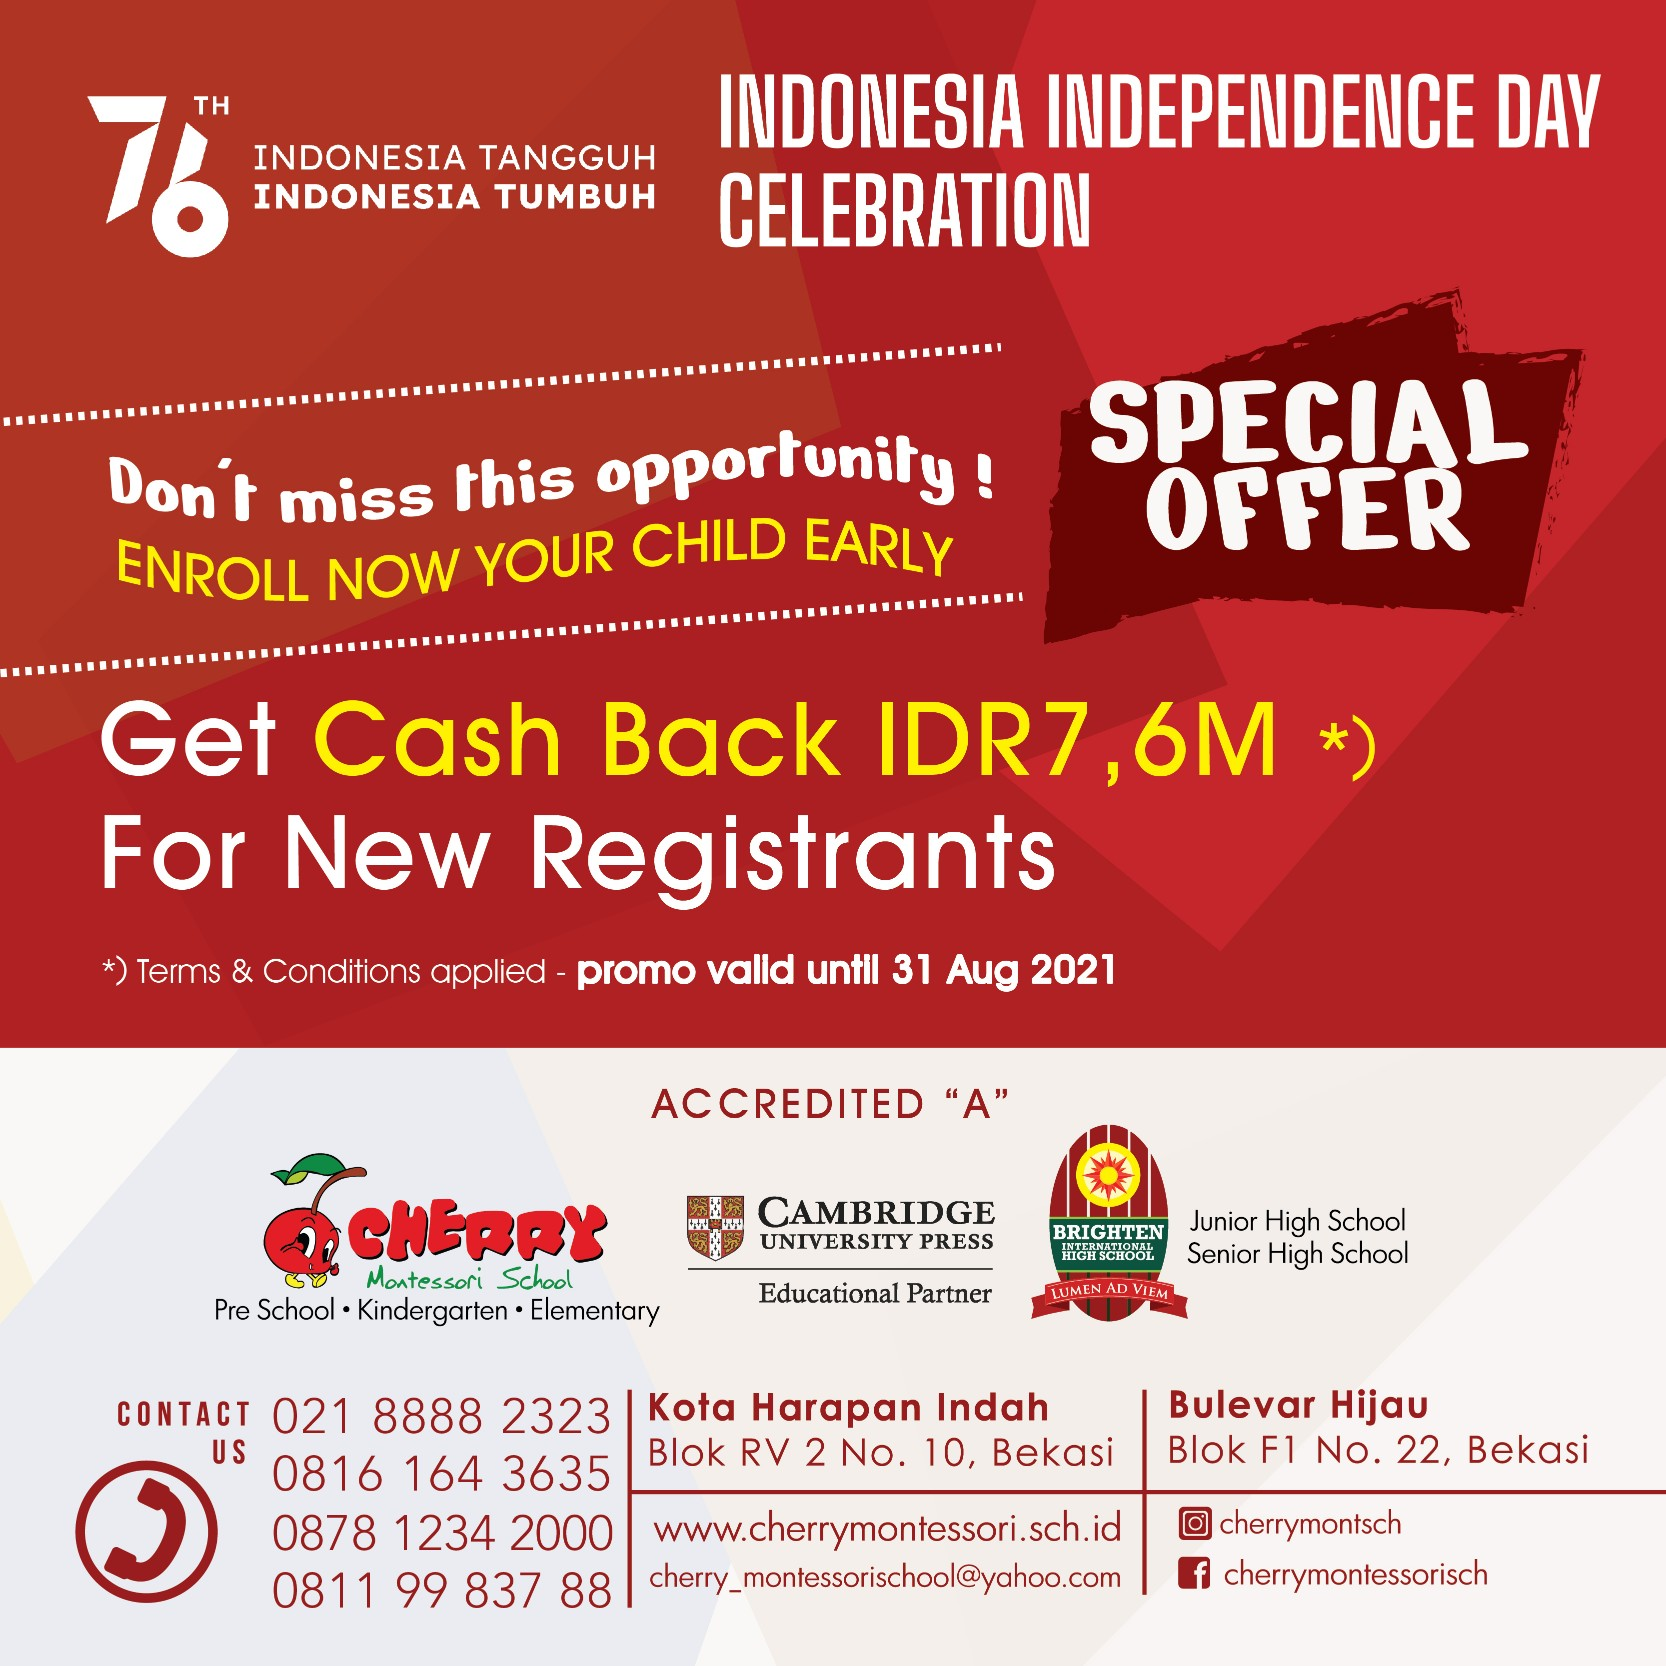 Special Offer 17 Aug 2021